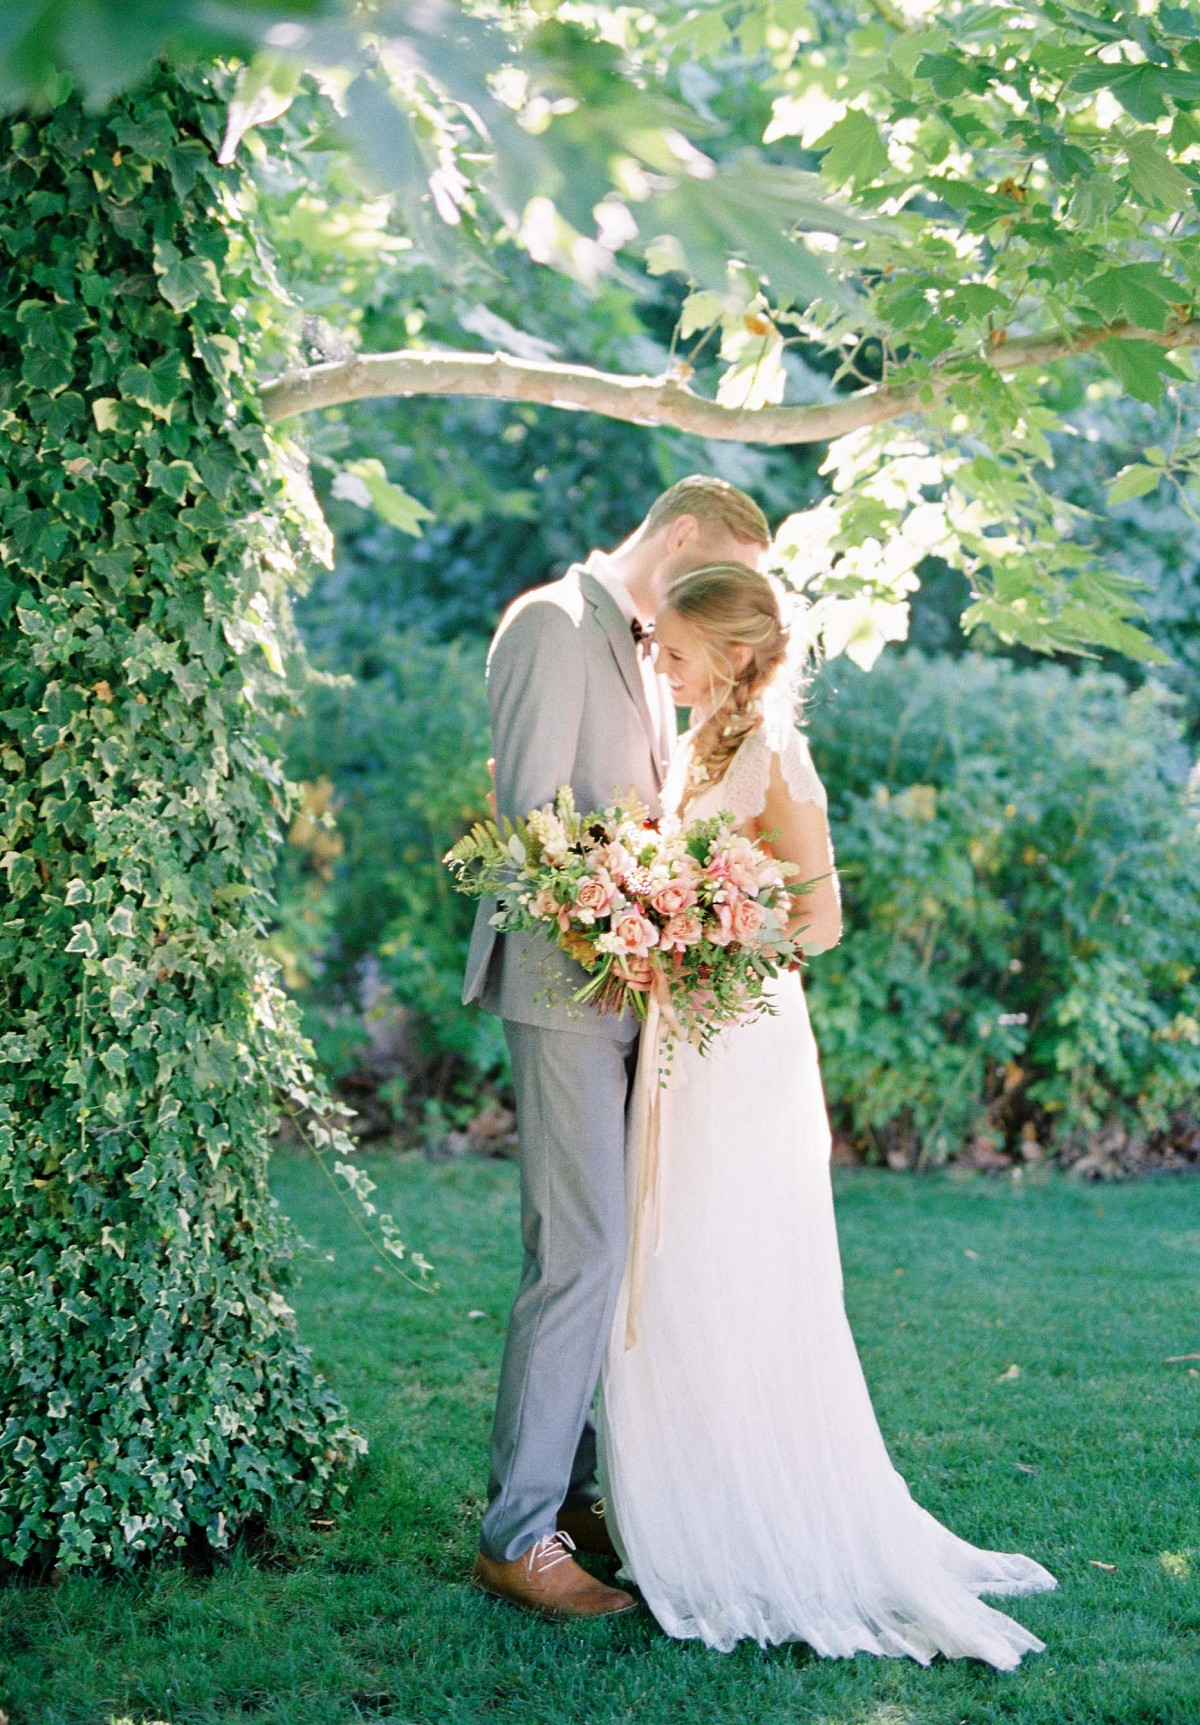 The Quintessential Spring Bouquet and a Romantic Wedding at Kestrel Park